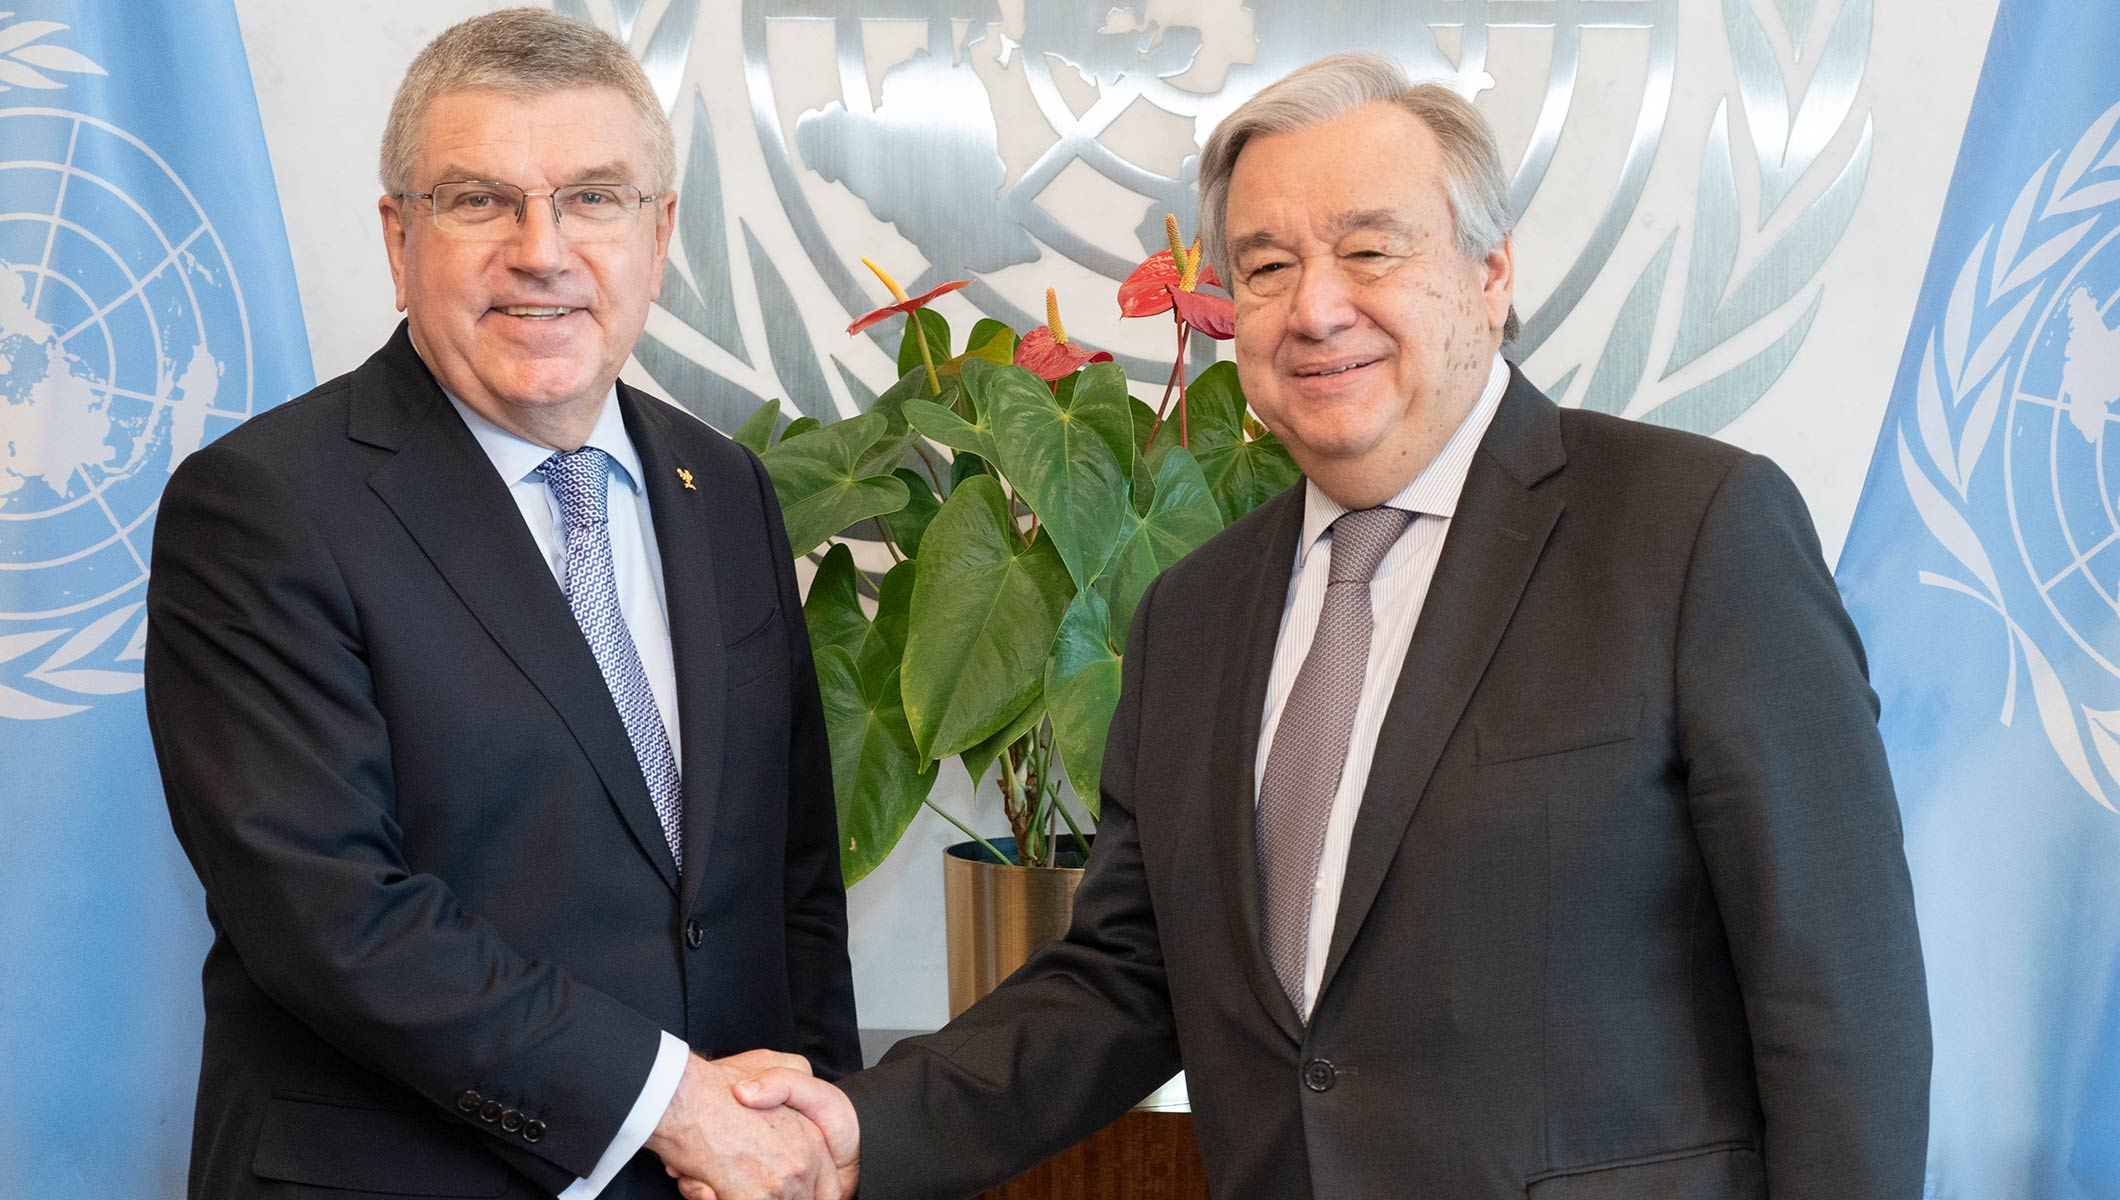 IOC President meets with UN Secretary General and presents new IOC Permanent Observer